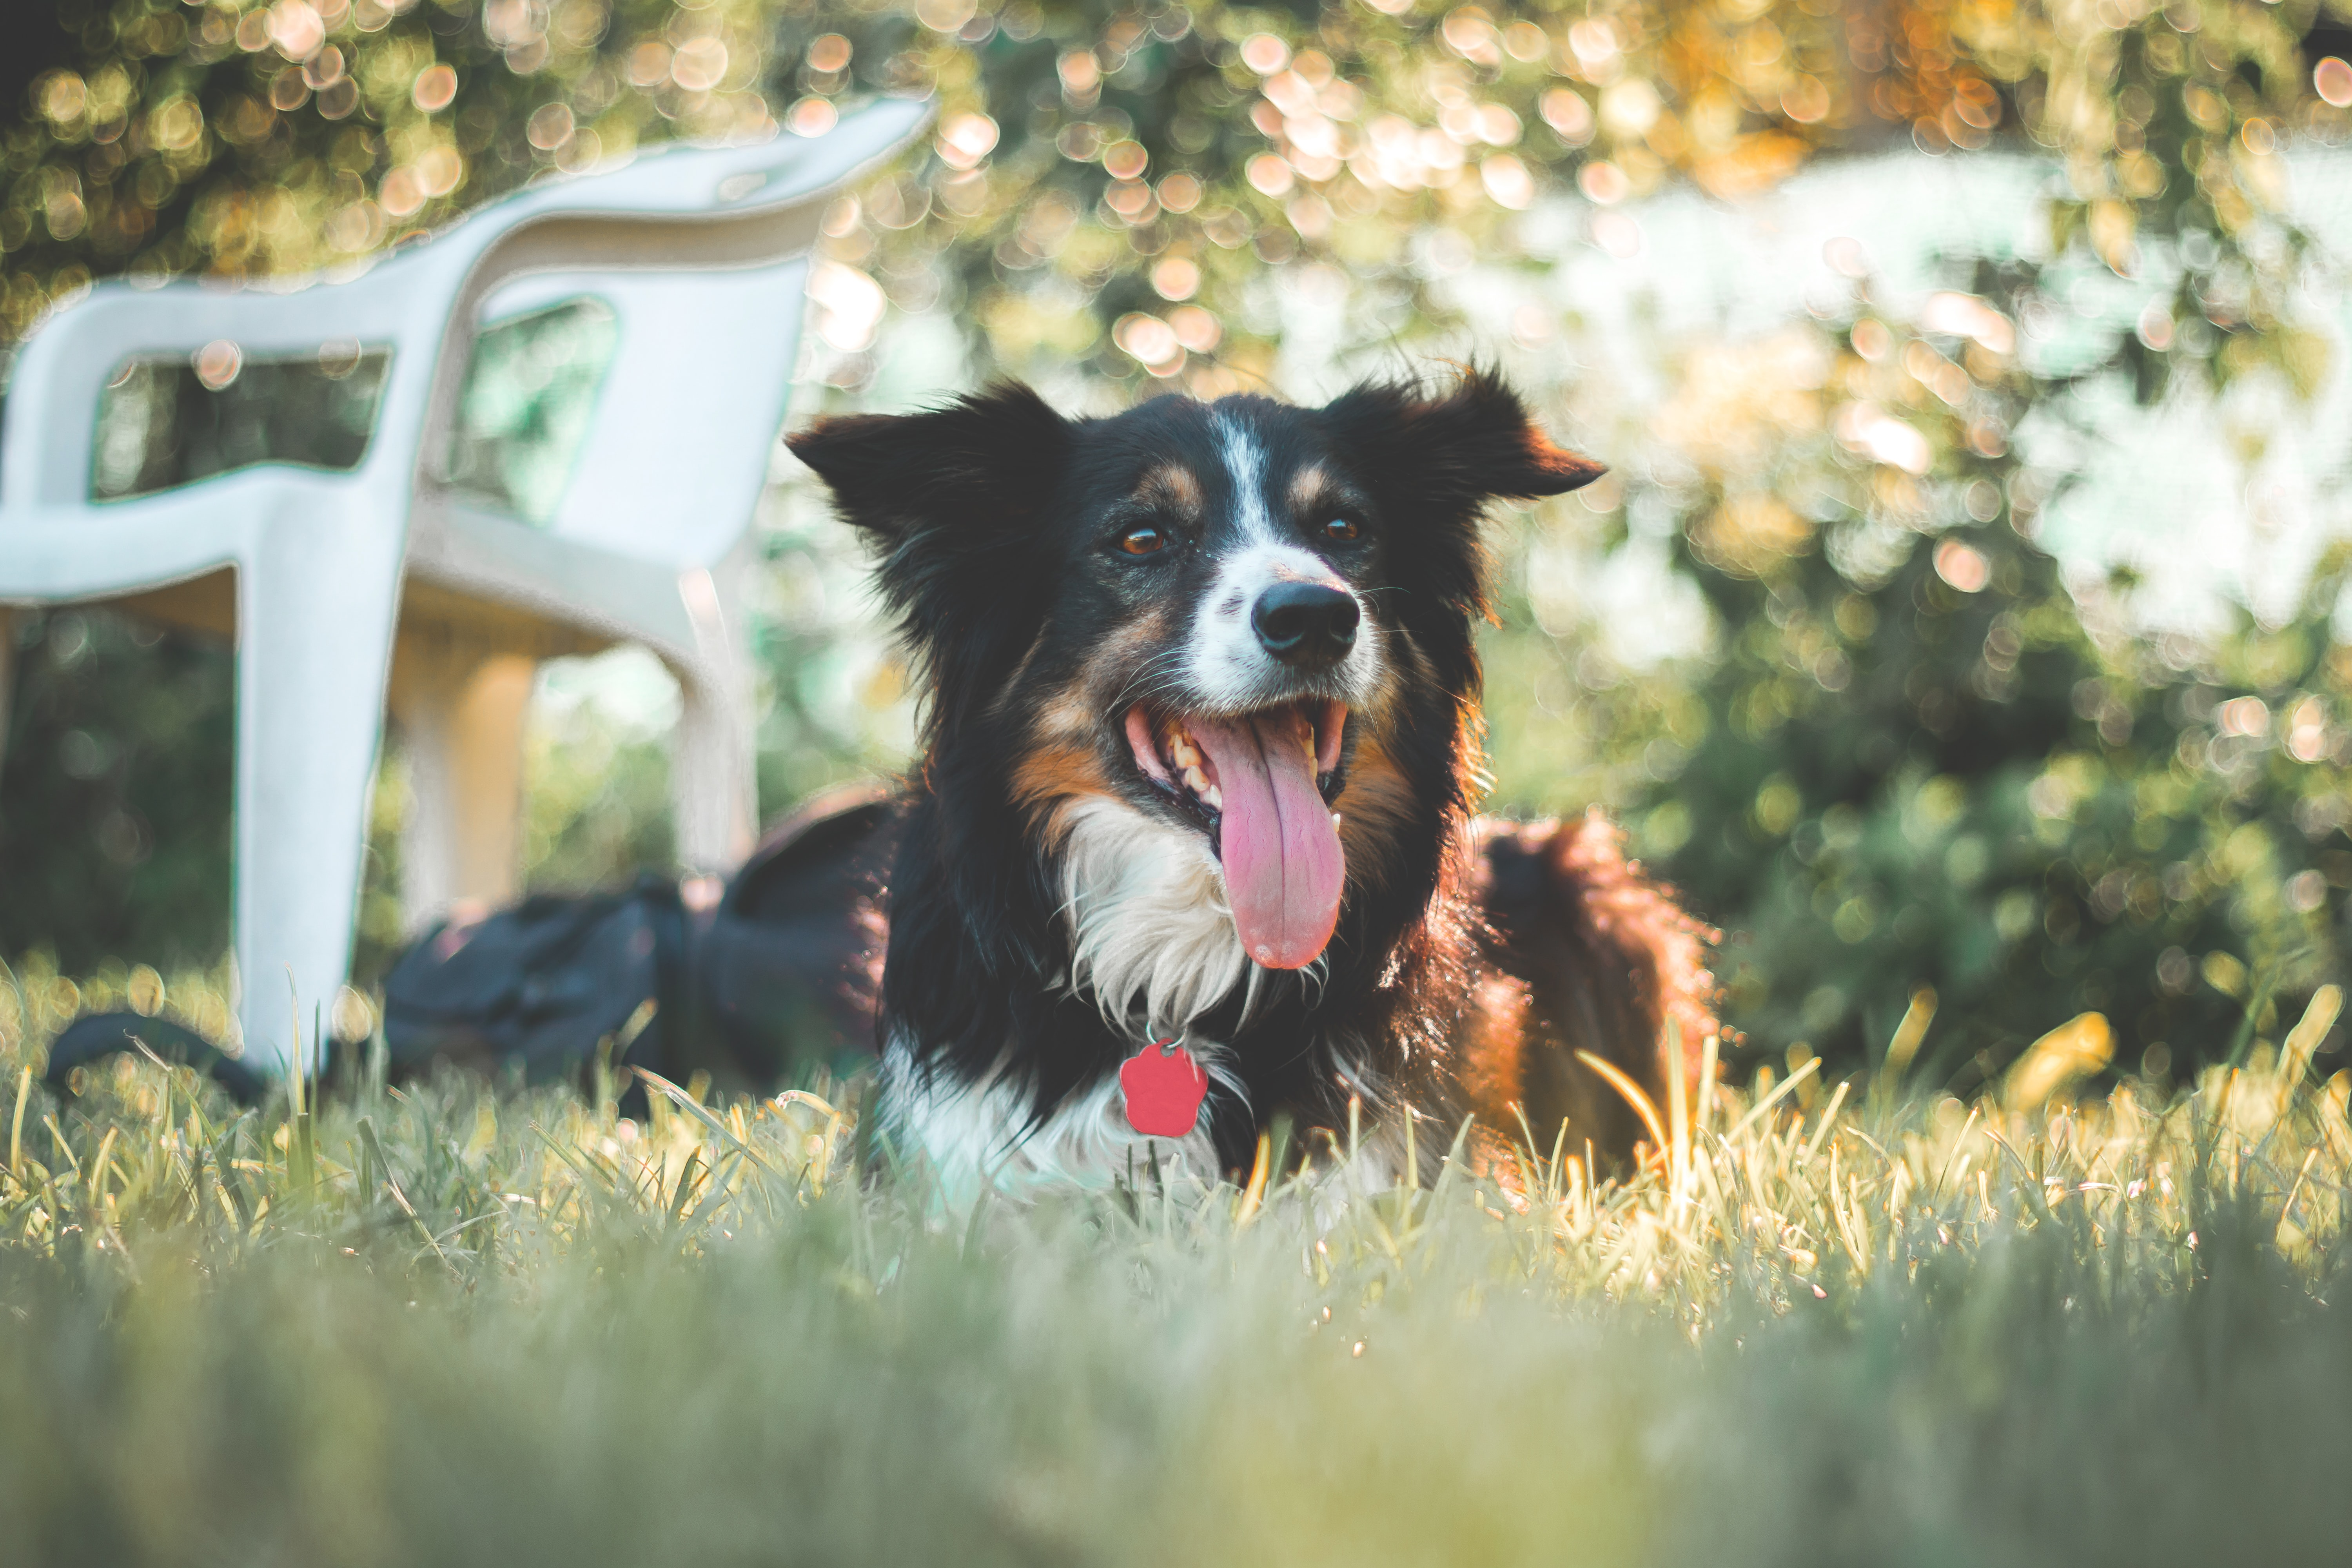 A border collie looking happy in the garden